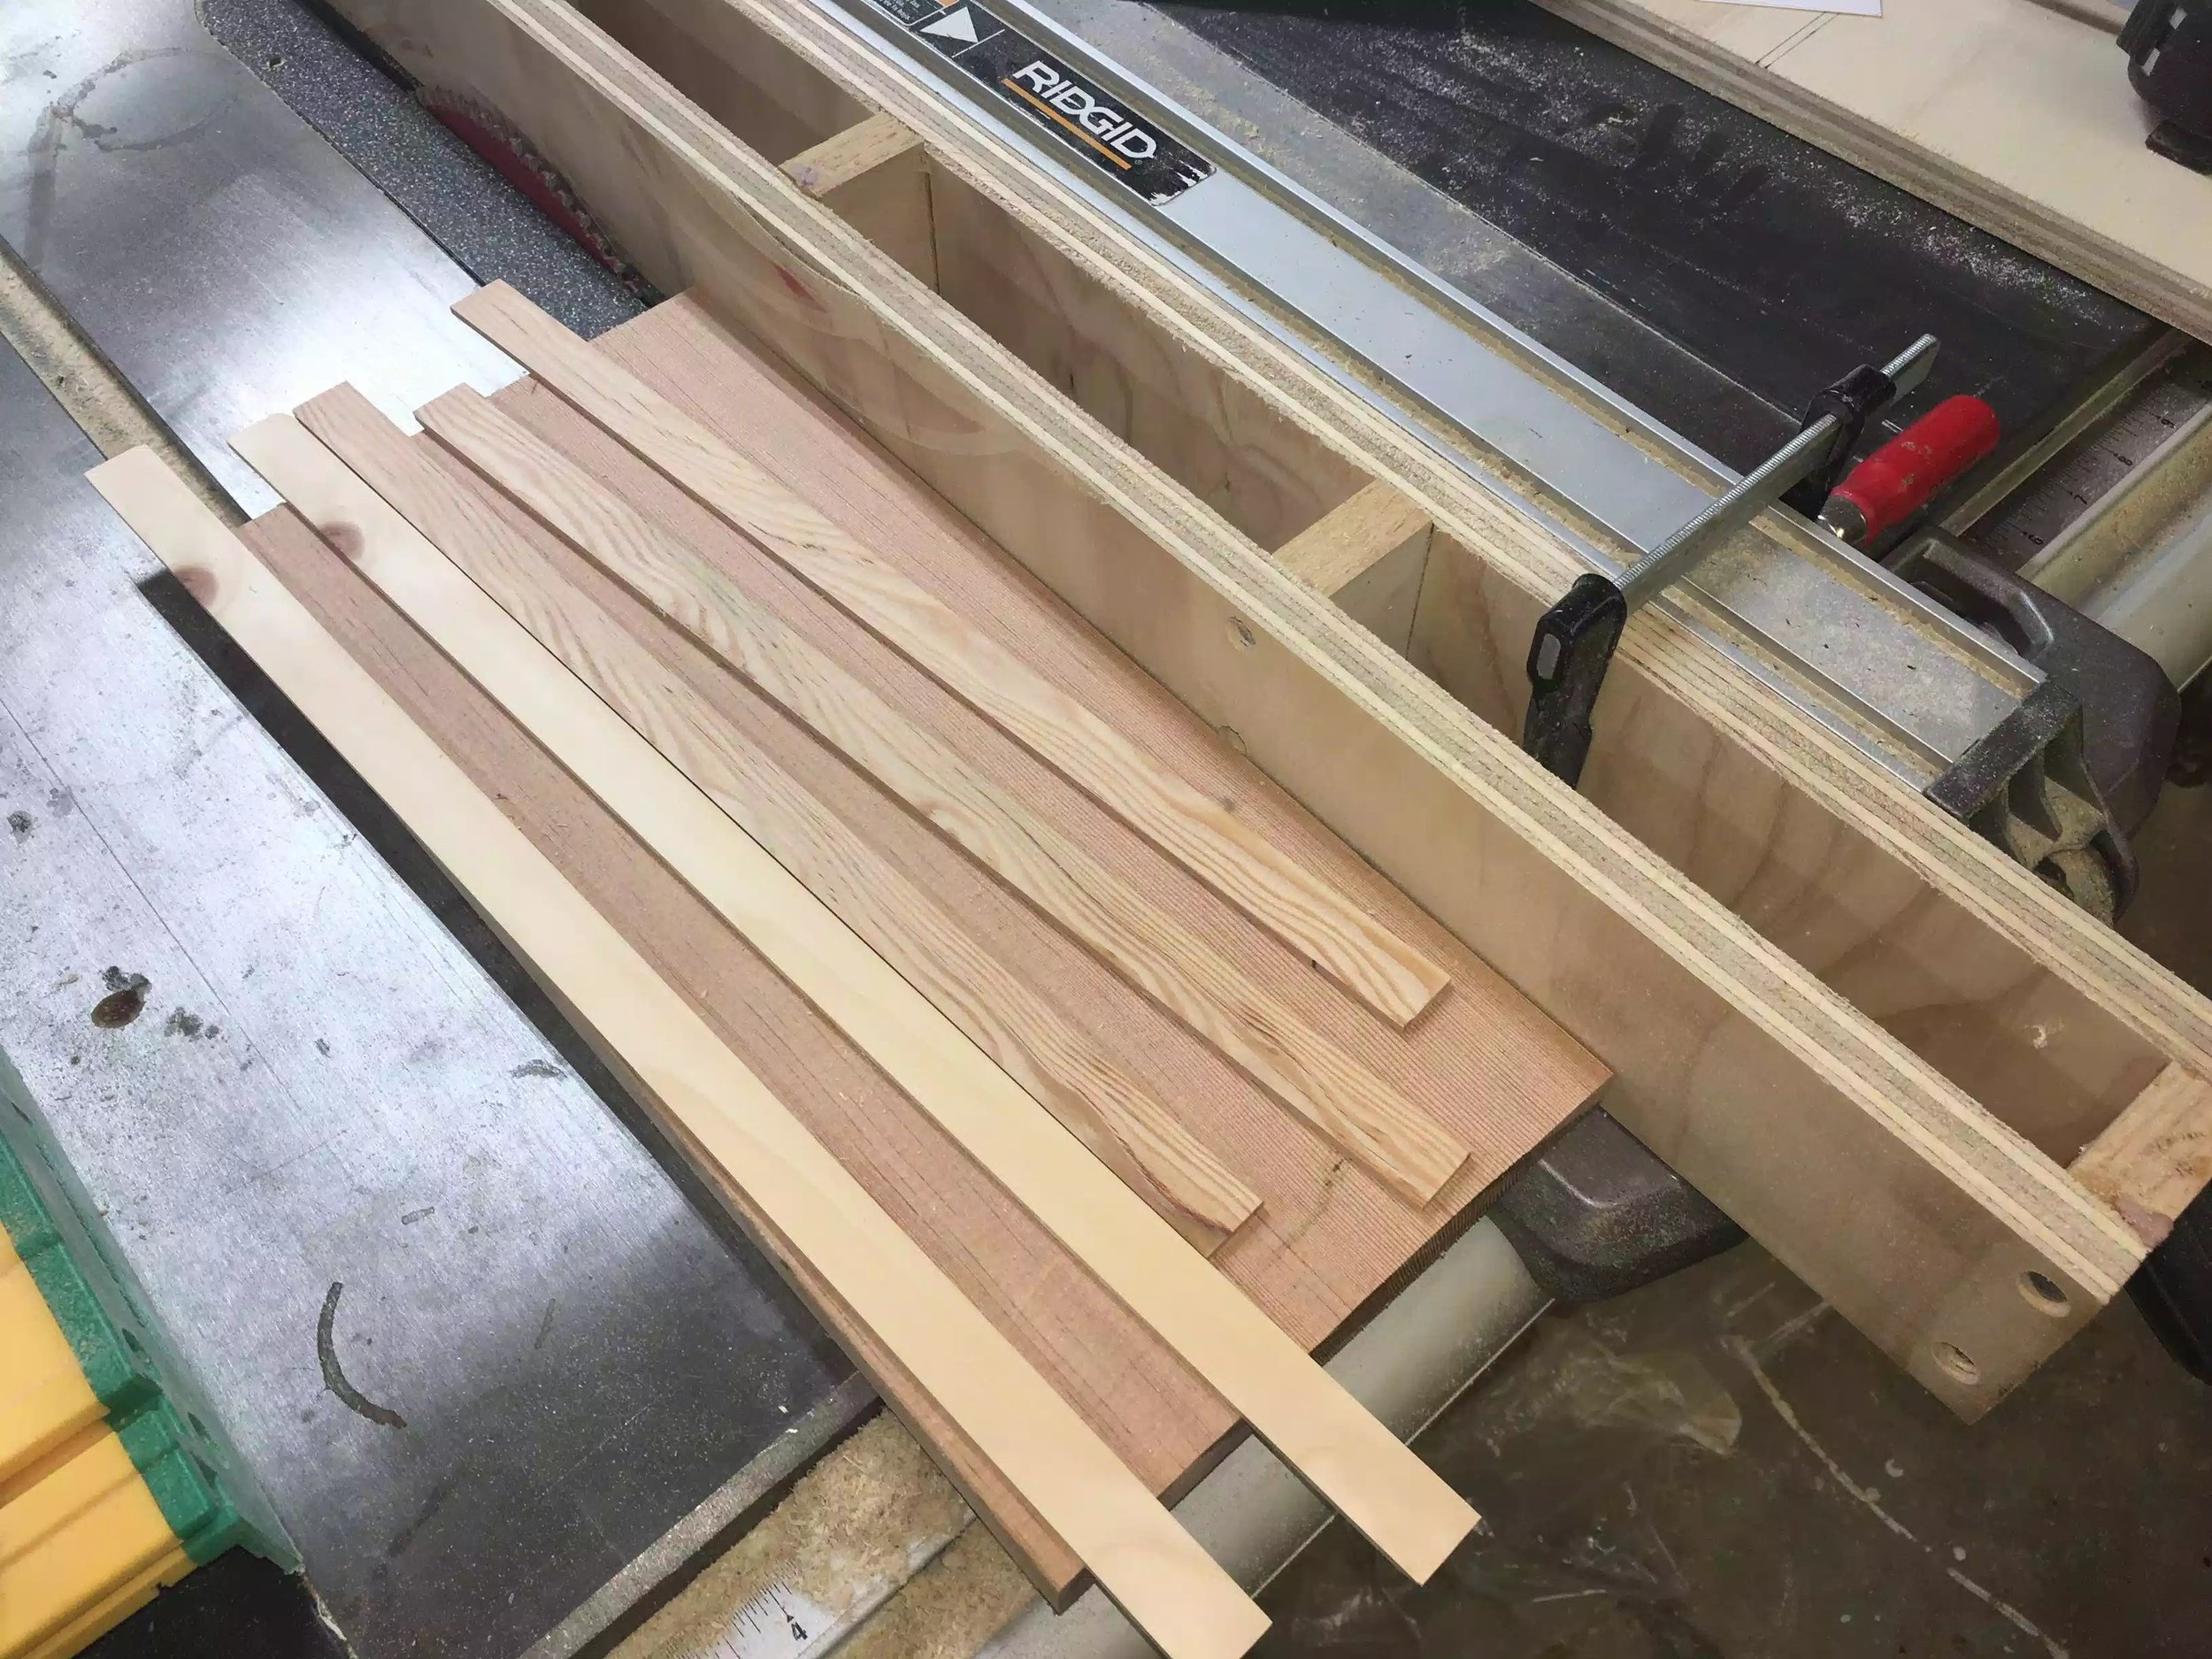 """Here is the 1/8"""" thick strips that I made, I need these as spacers between the drawer false fronts."""